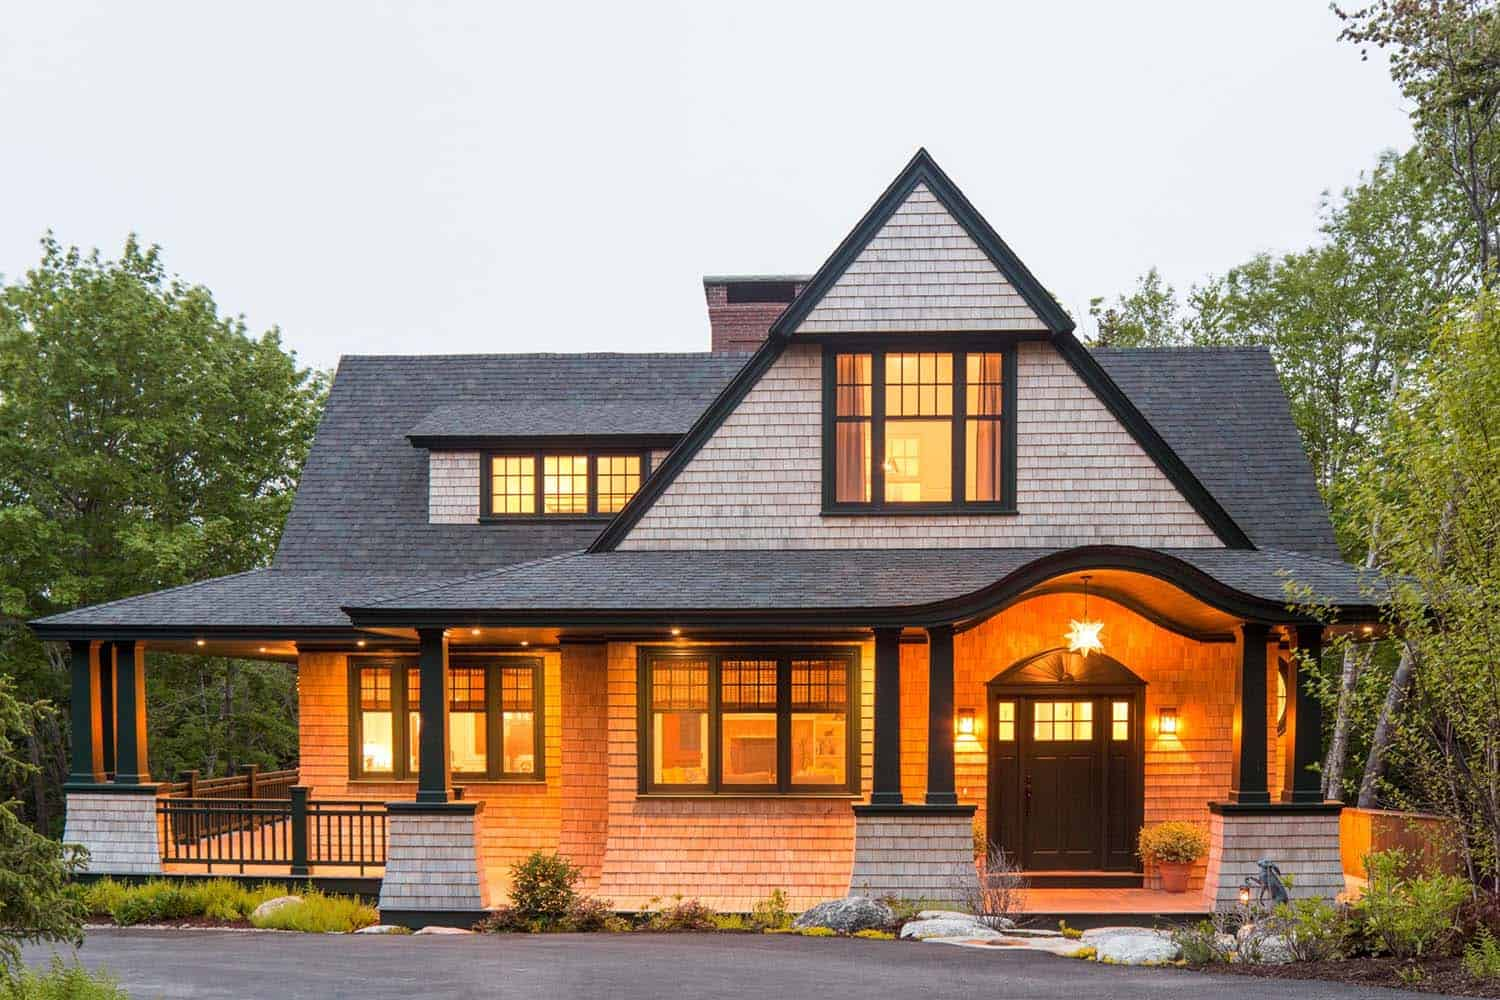 Shingle Style Cottage In The Seaside Village Of Seal Harbor Maine